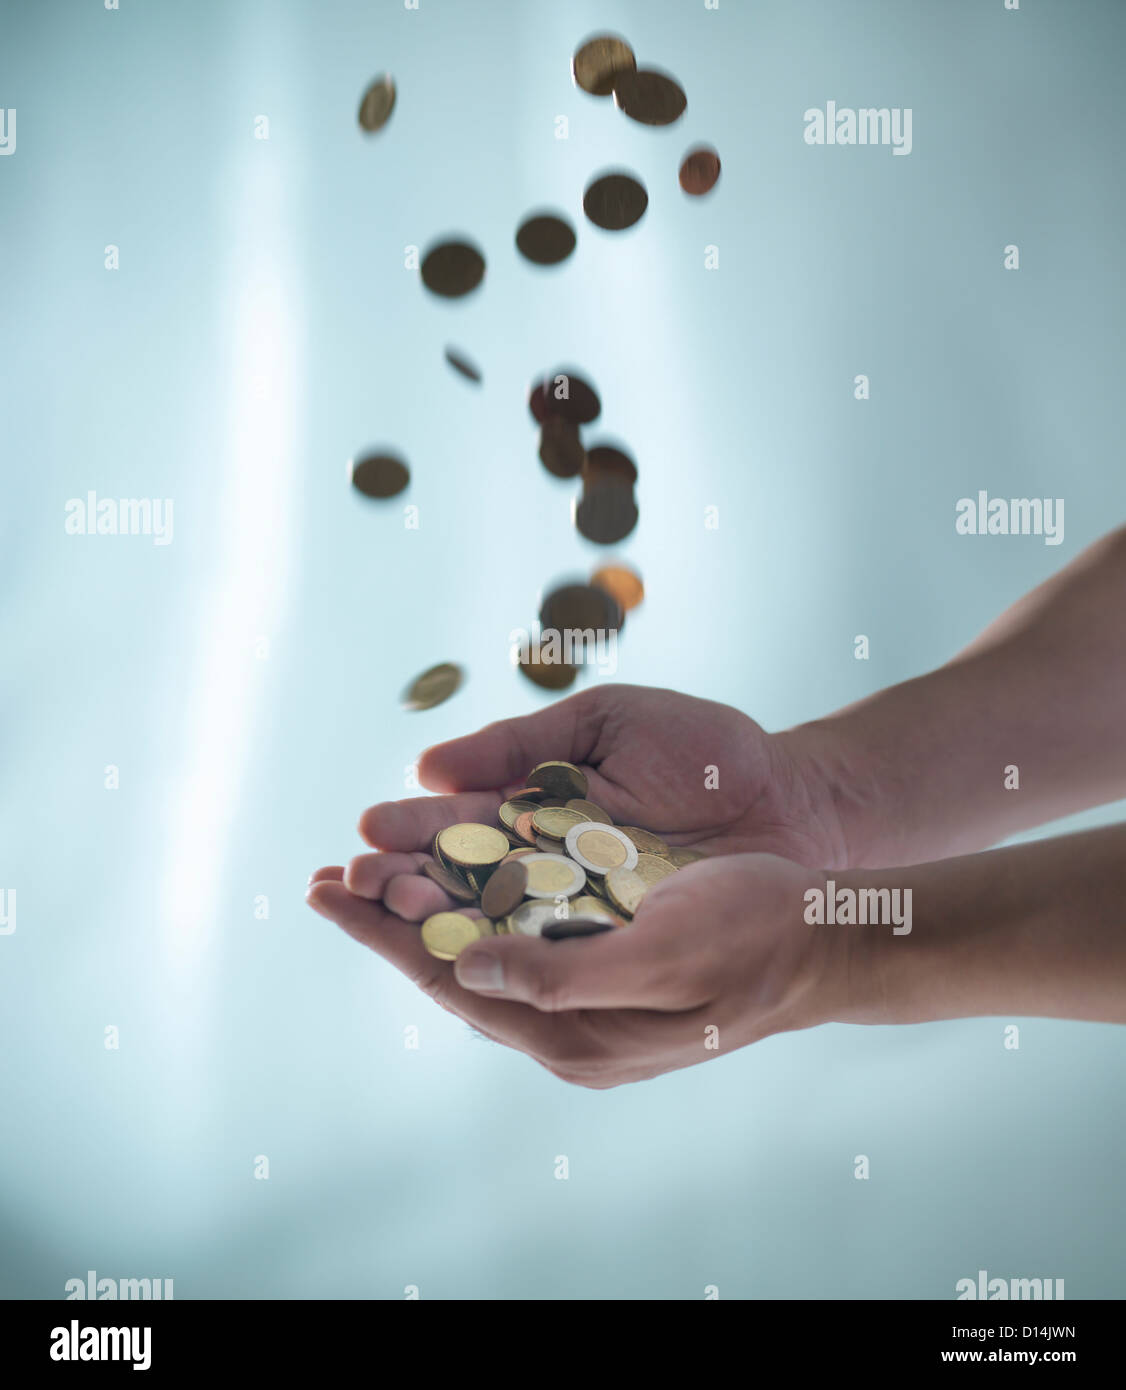 Close up of hands catching pile of coins - Stock Image